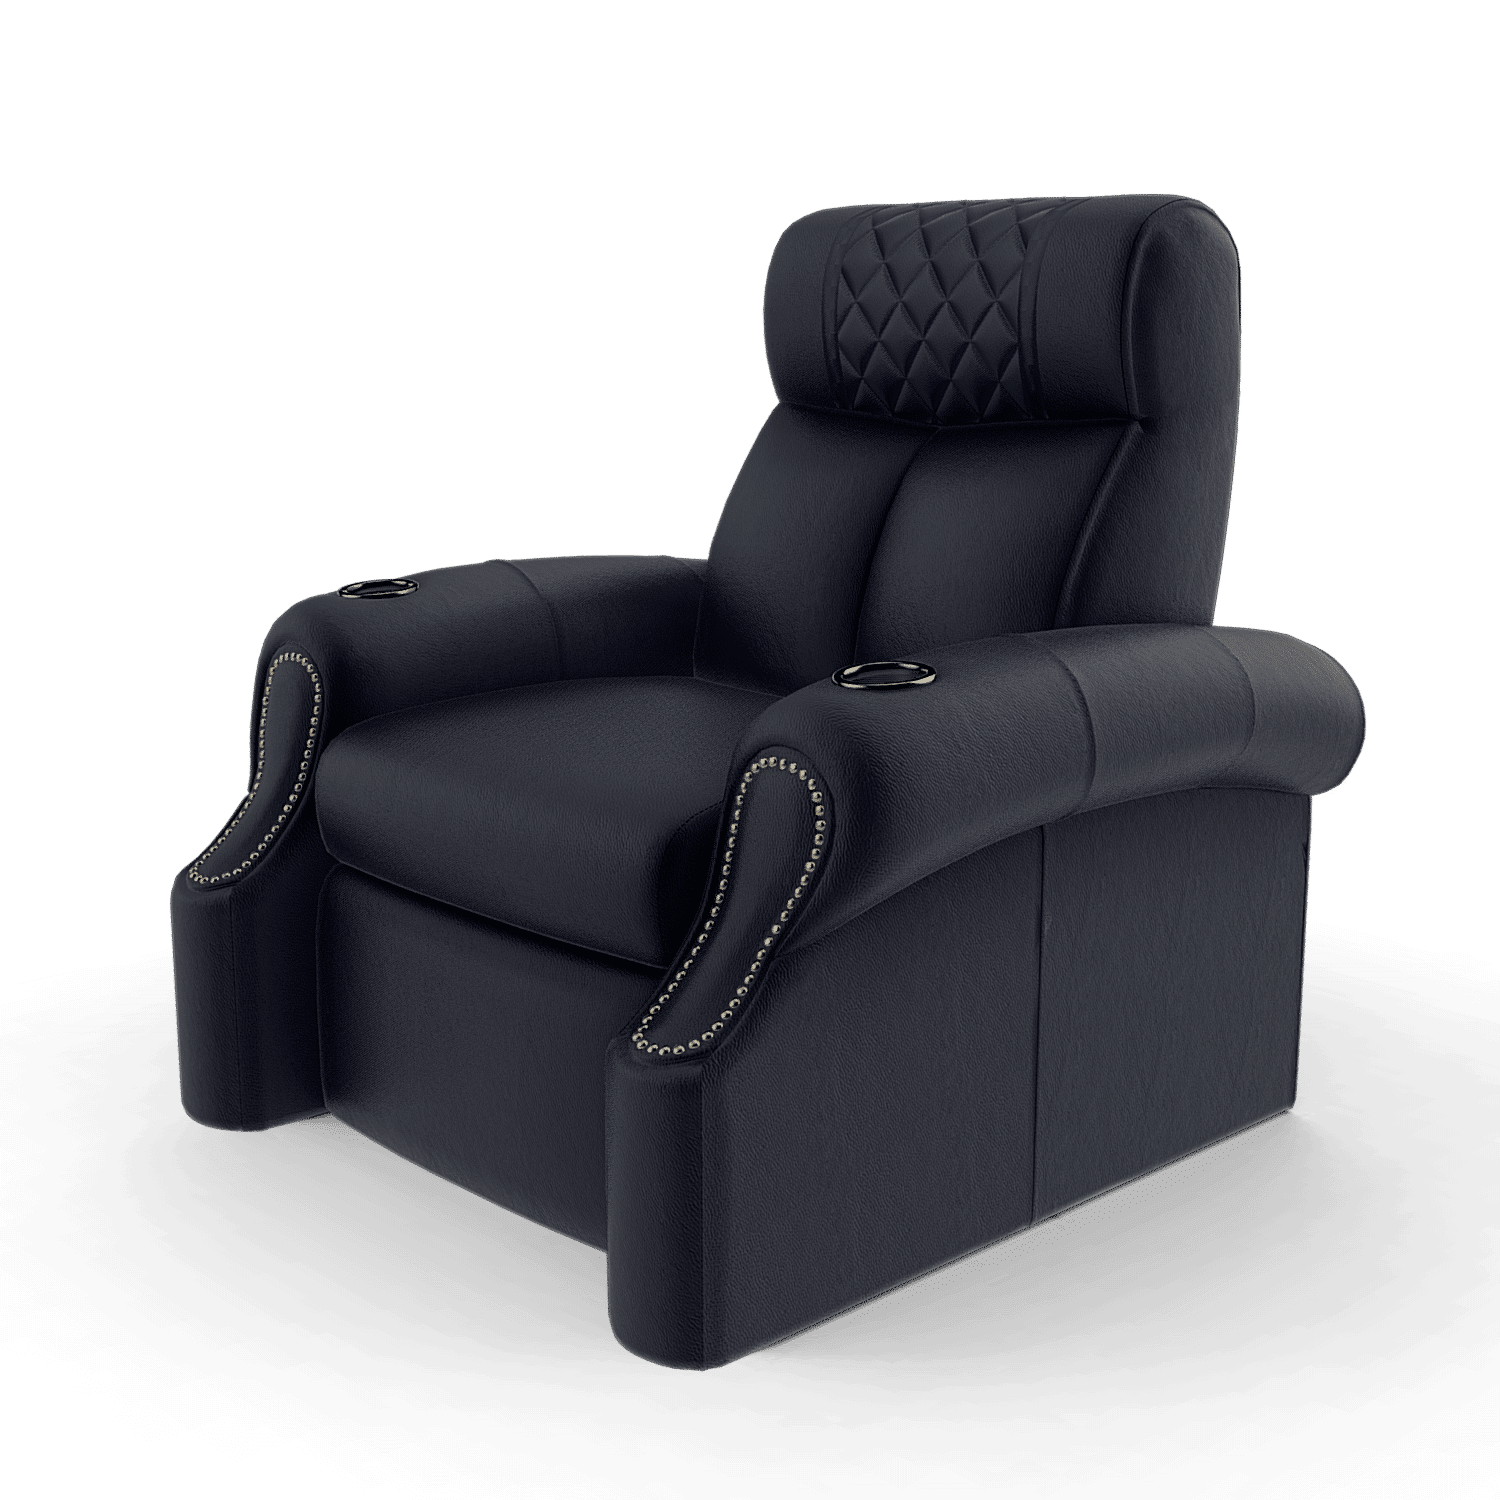 home_theater_seating blue l9